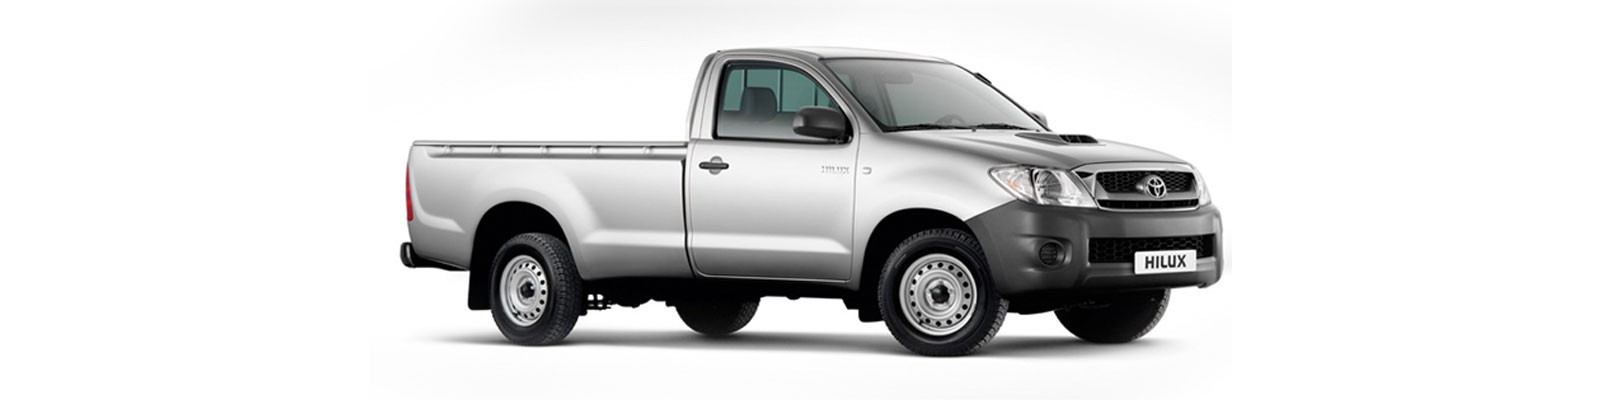 Accessories For Toyota Hilux Mk6 Single Cab 2009 To 2012